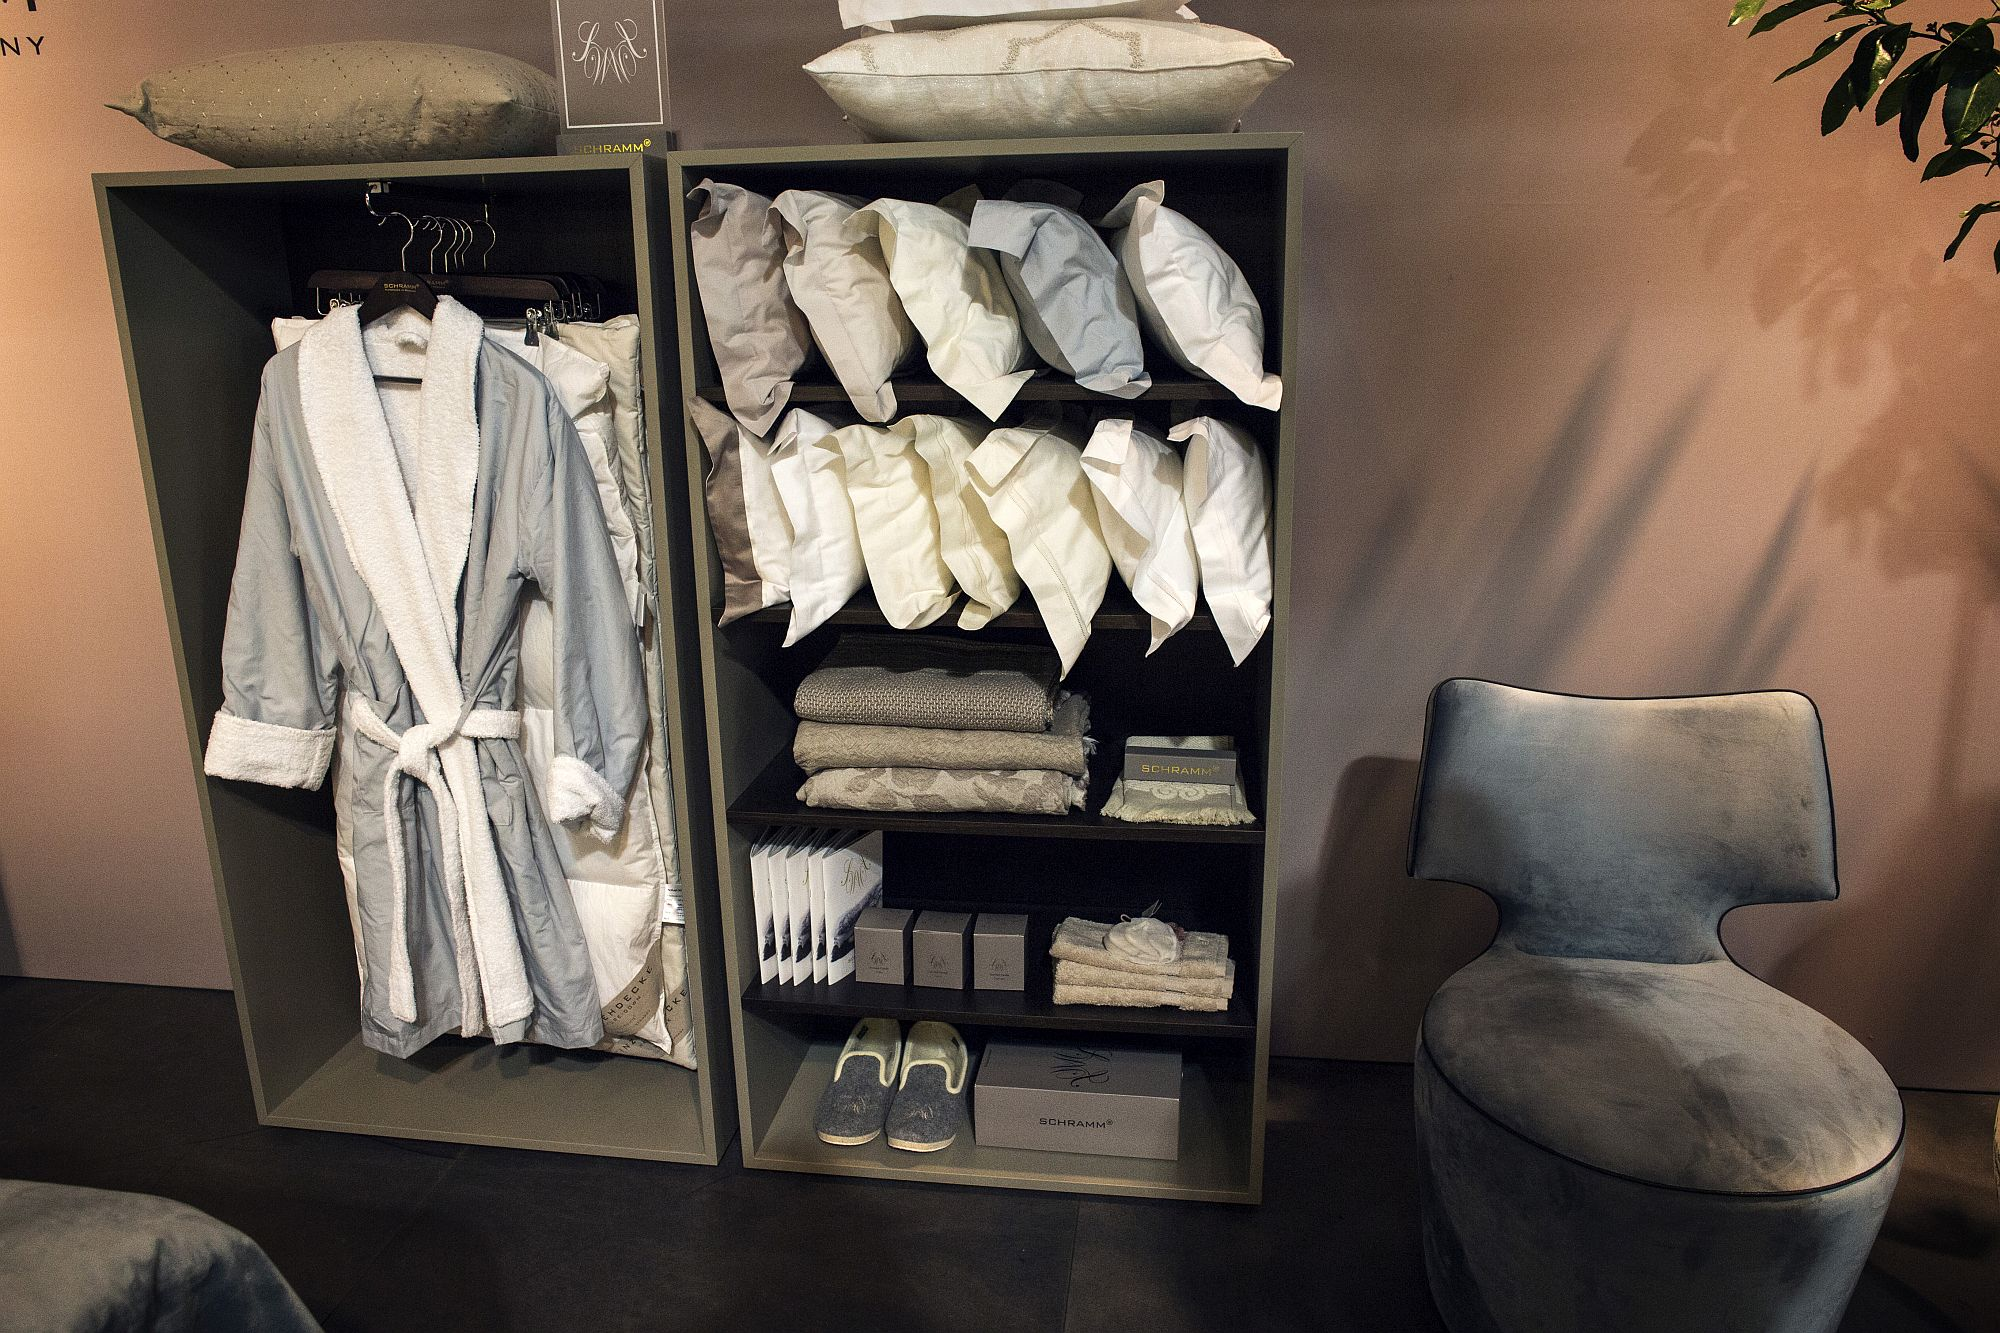 Standalone units turn the bedroom corner into a delightful closet